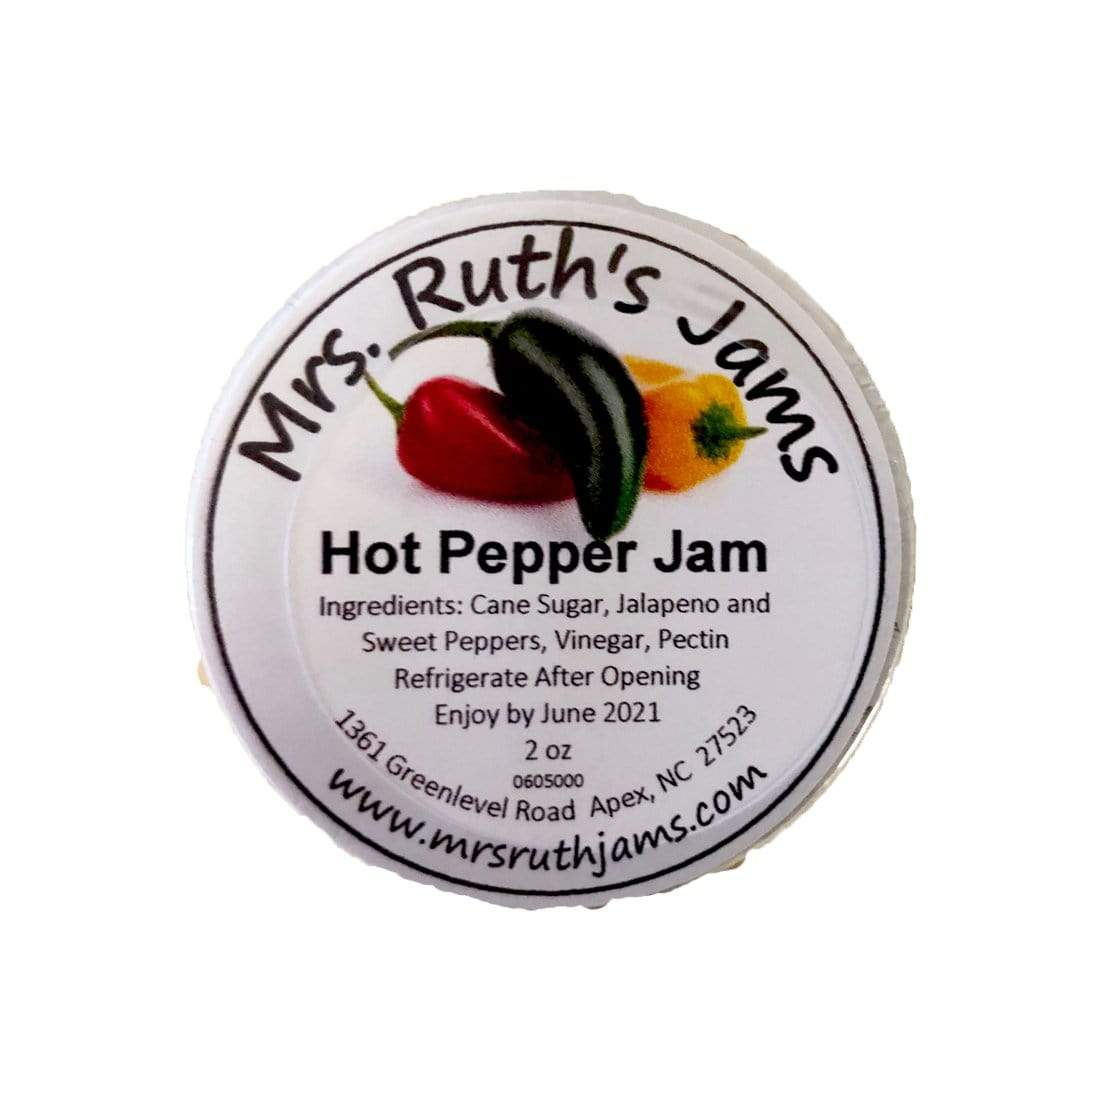 Mrs. Ruth's Jams Mrs. Ruth's Jam Hot Pepper Jam 2 oz